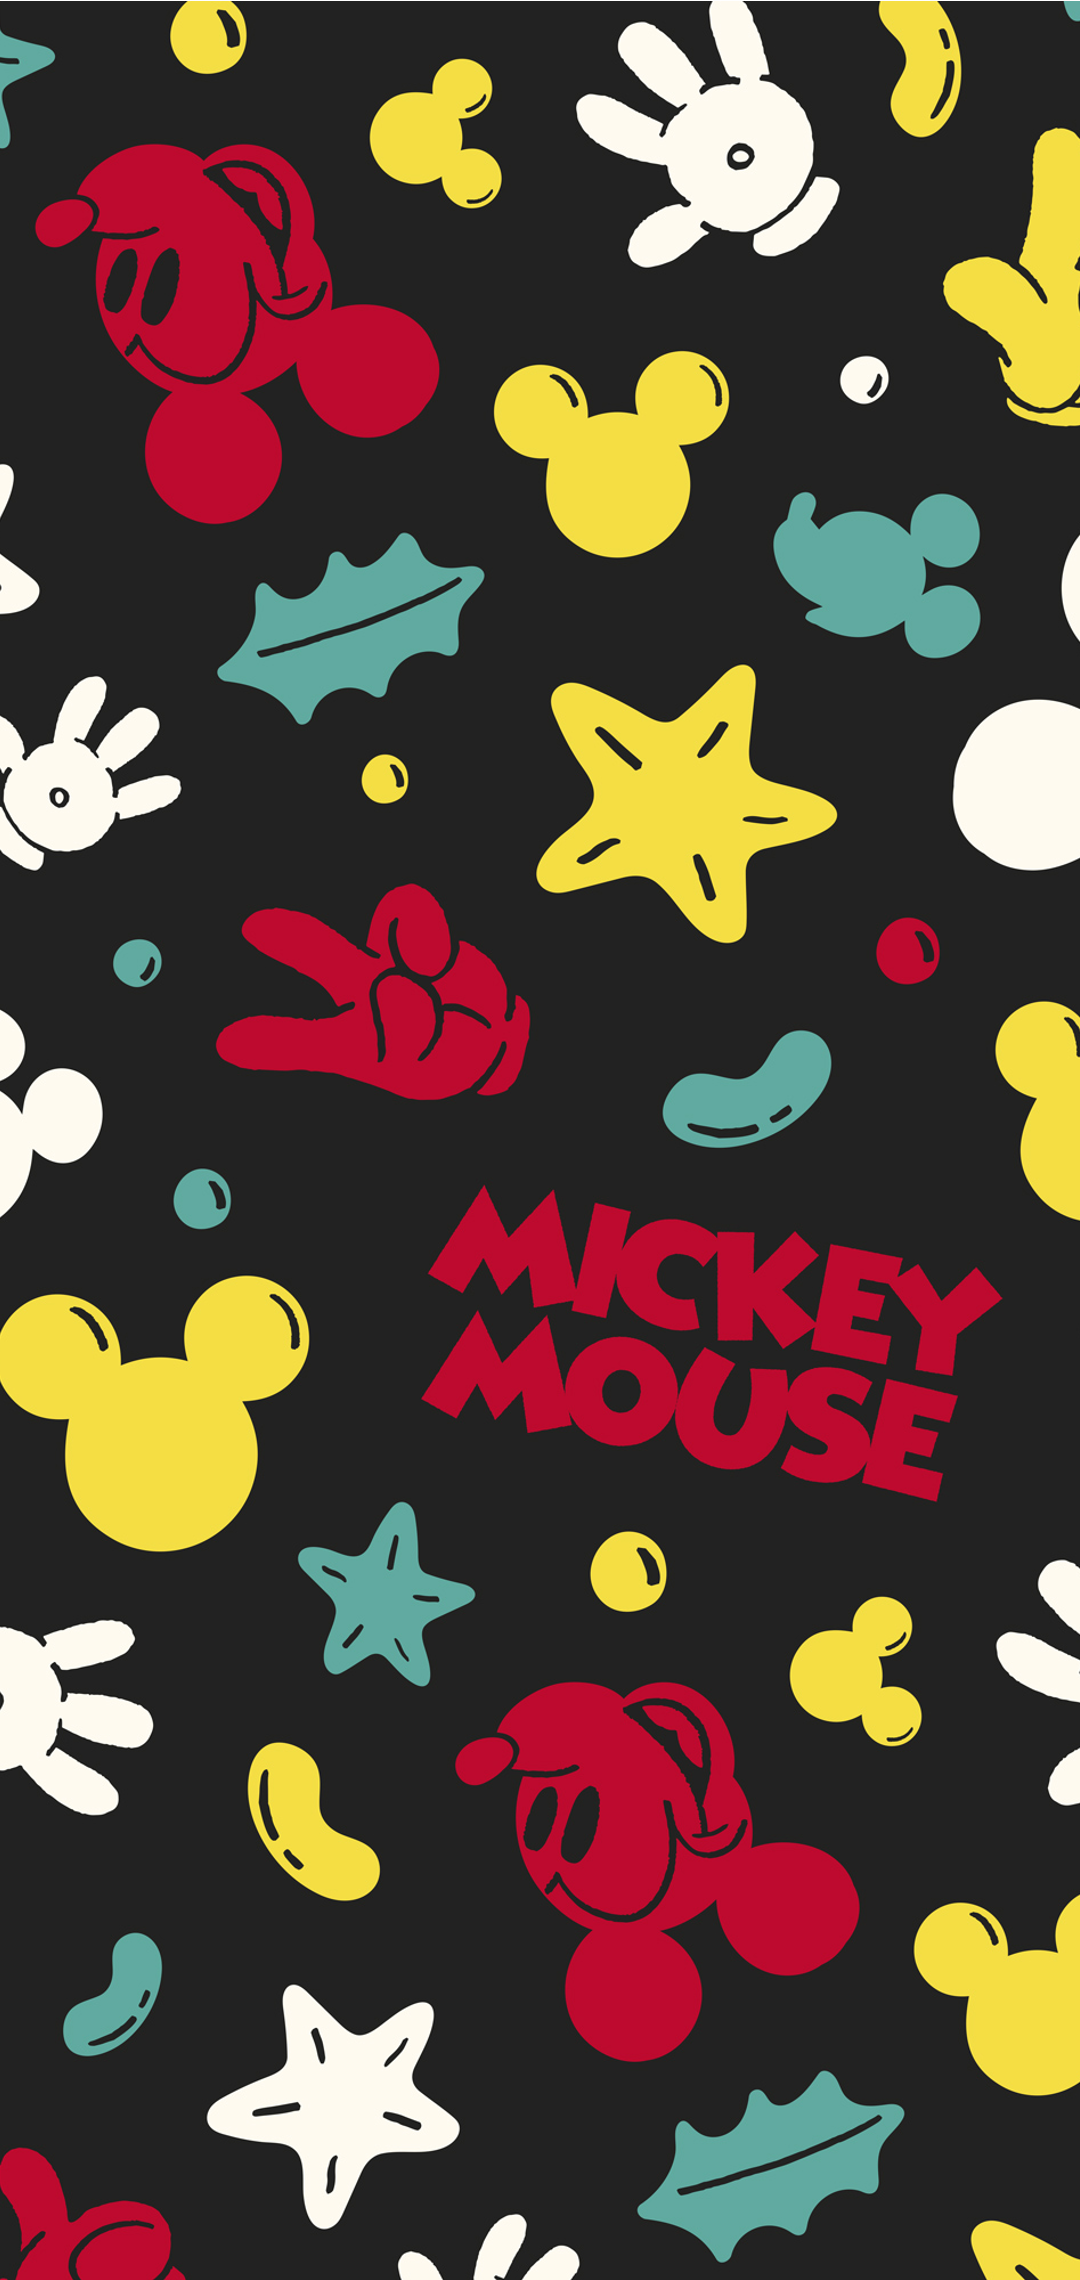 Home Screen Mickey Mouse Wallpaper Hd 1080x2280 Download Hd Wallpaper Wallpapertip